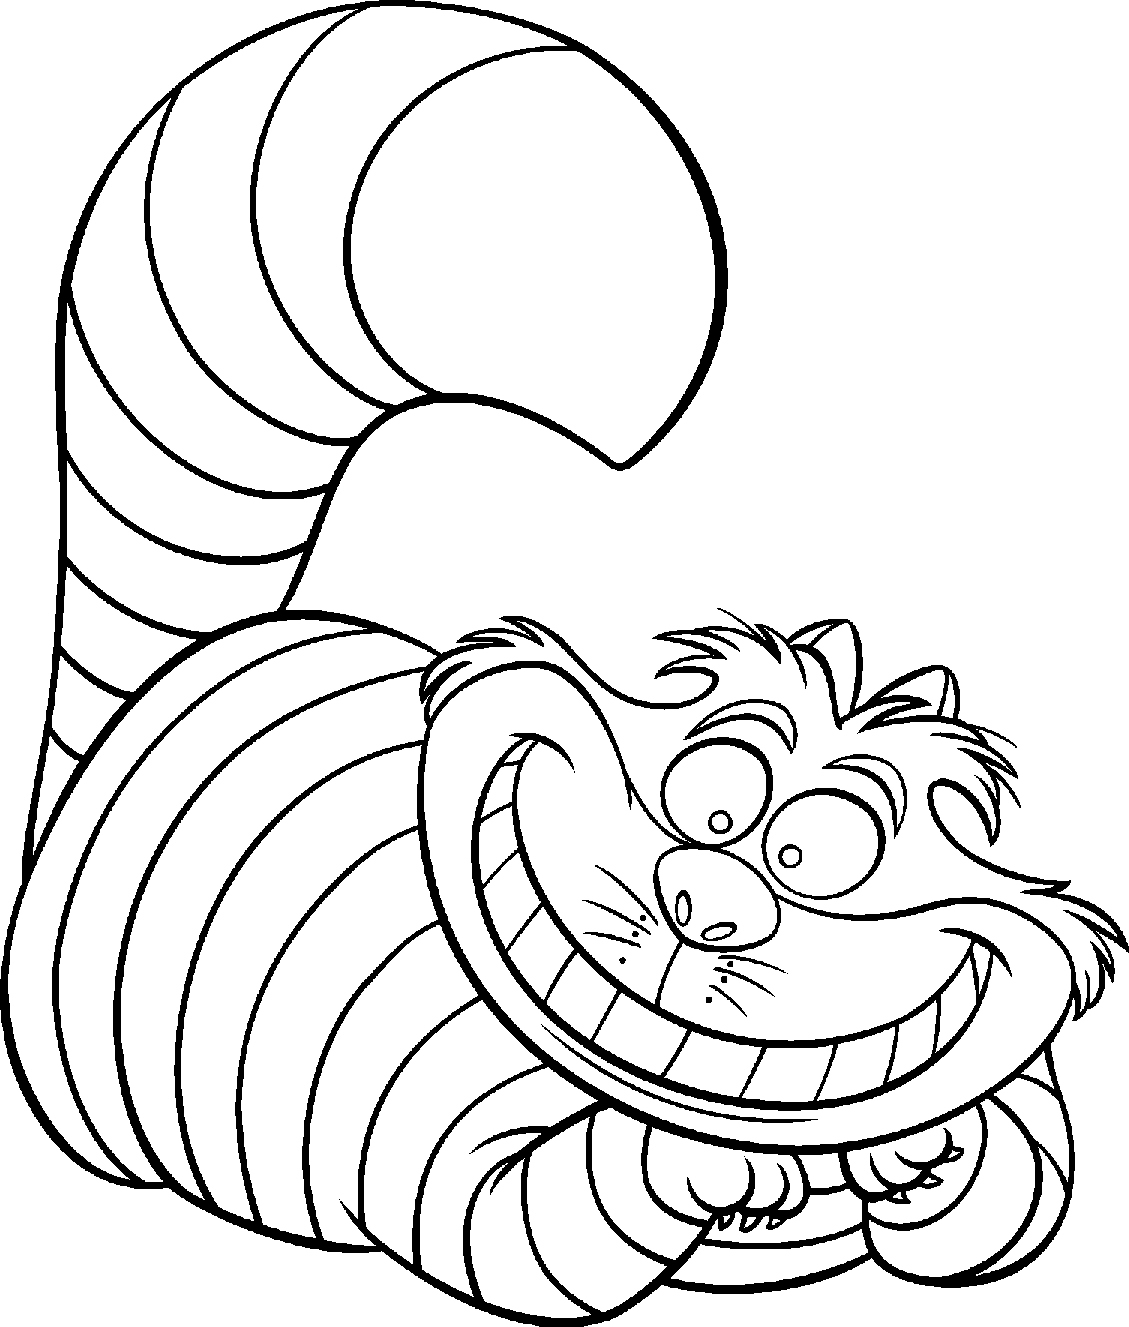 disney character coloring pages printable disney coloring pages for kids cool2bkids disney character coloring pages